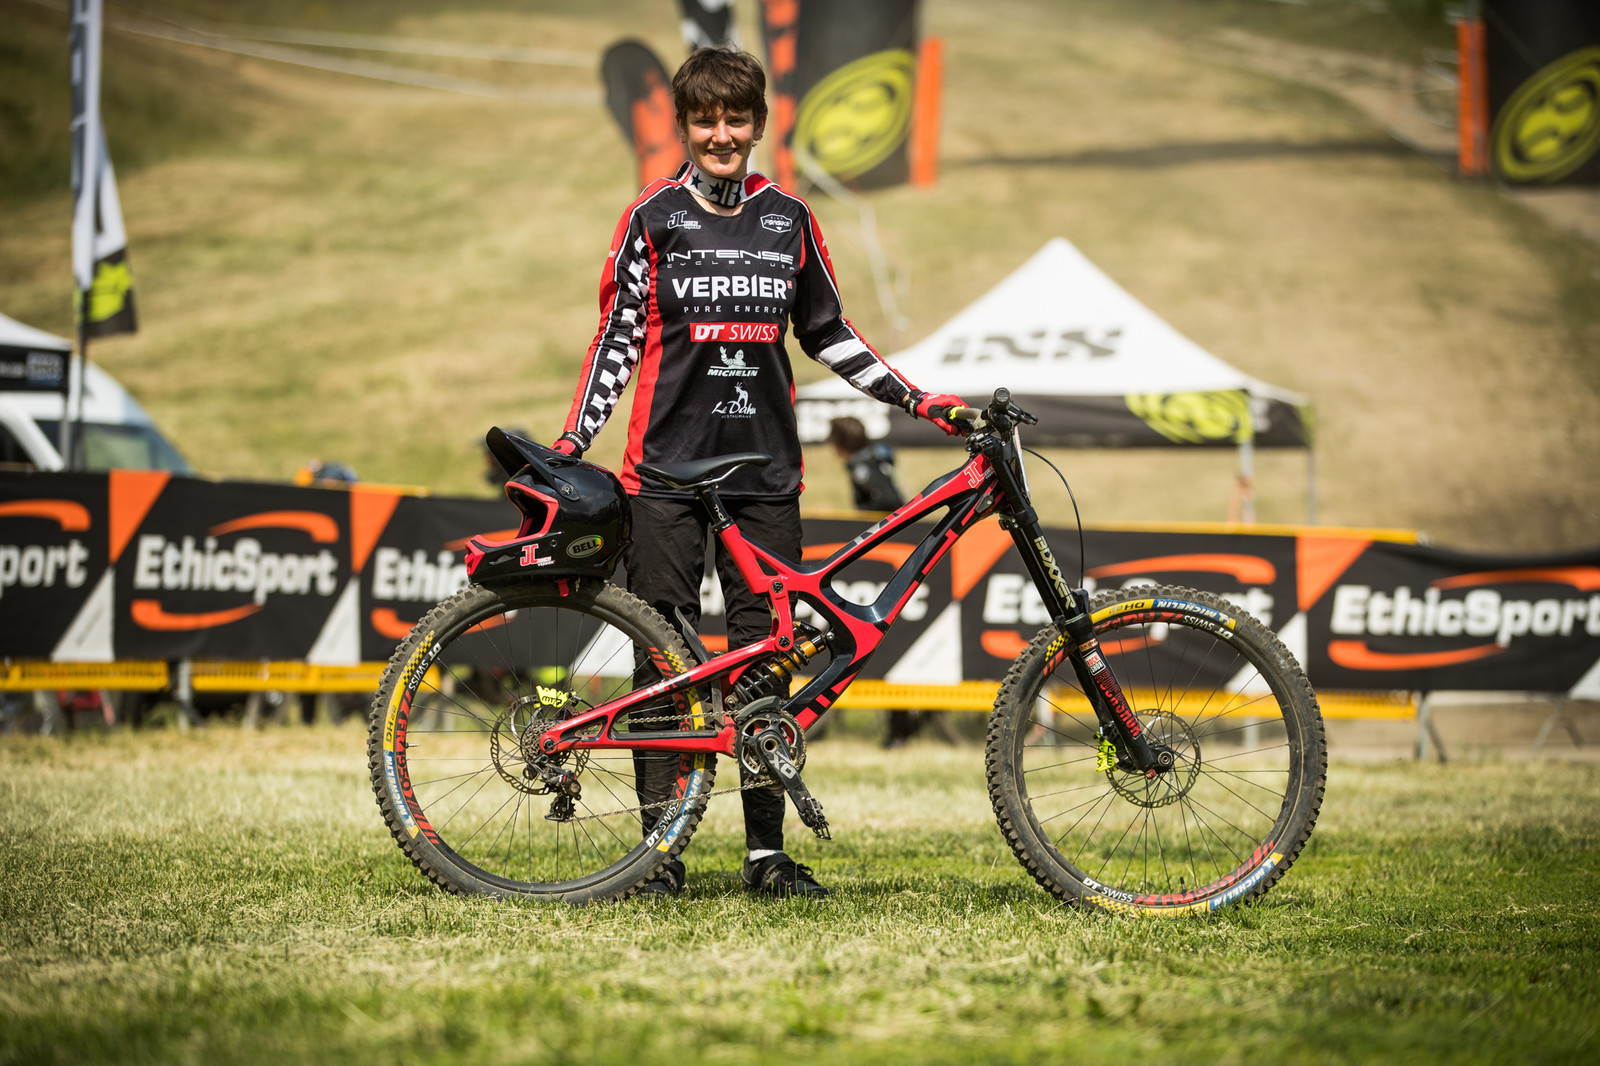 Janine Hübscher from JC Racing with her Intense M16 - 25 Downhill Bikes - iXS DH Cup #3 - Abetone - Mountain Biking Pictures - Vital MTB